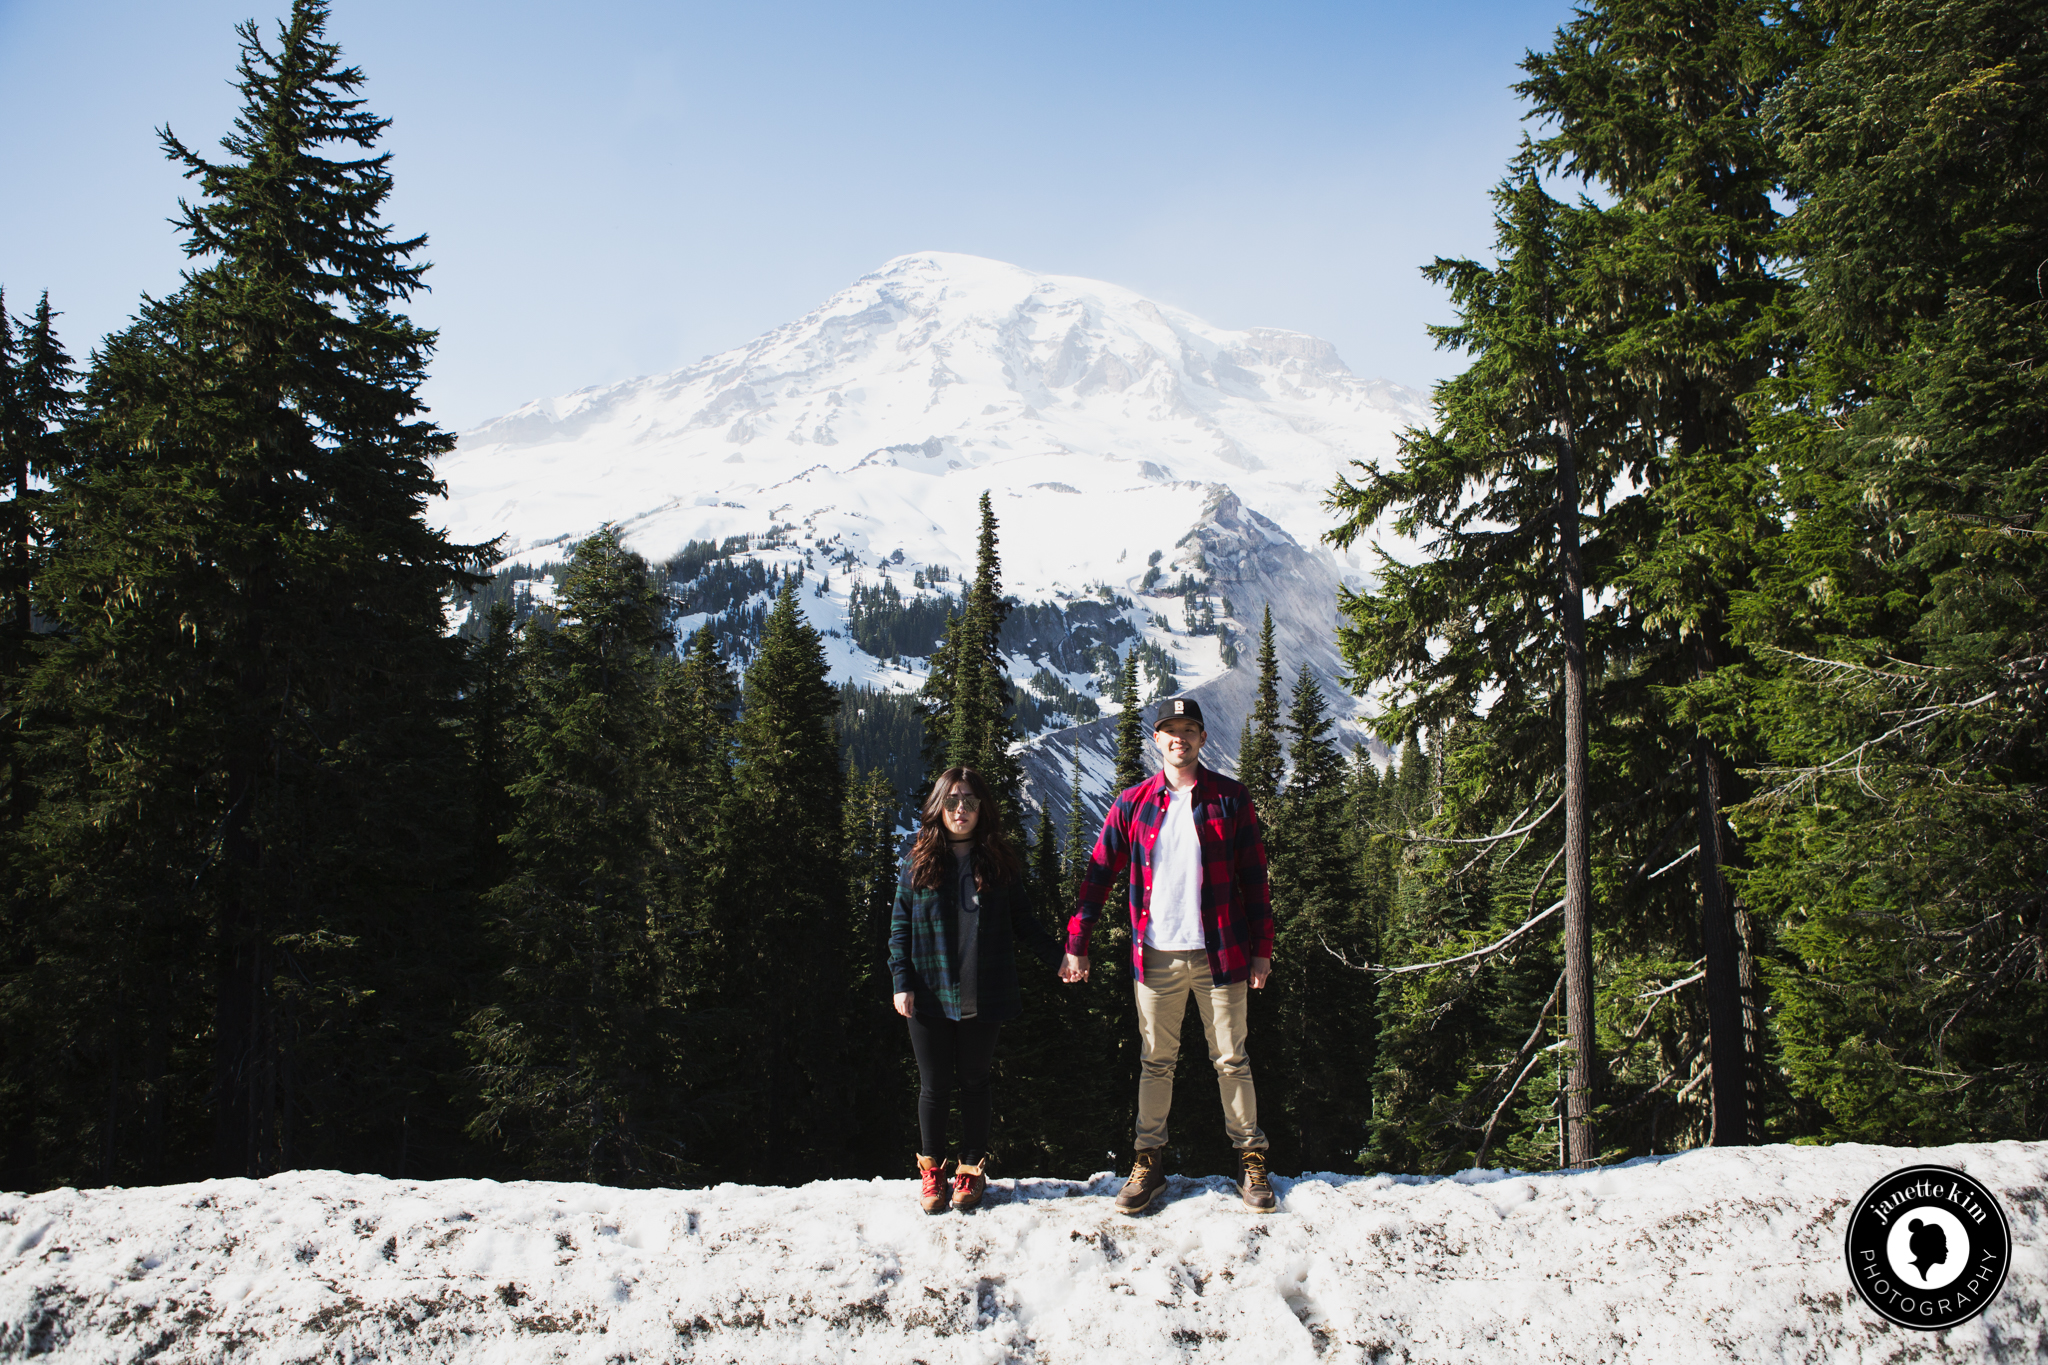 2016-04-30_Janette and Andrew_PNW-207.jpg